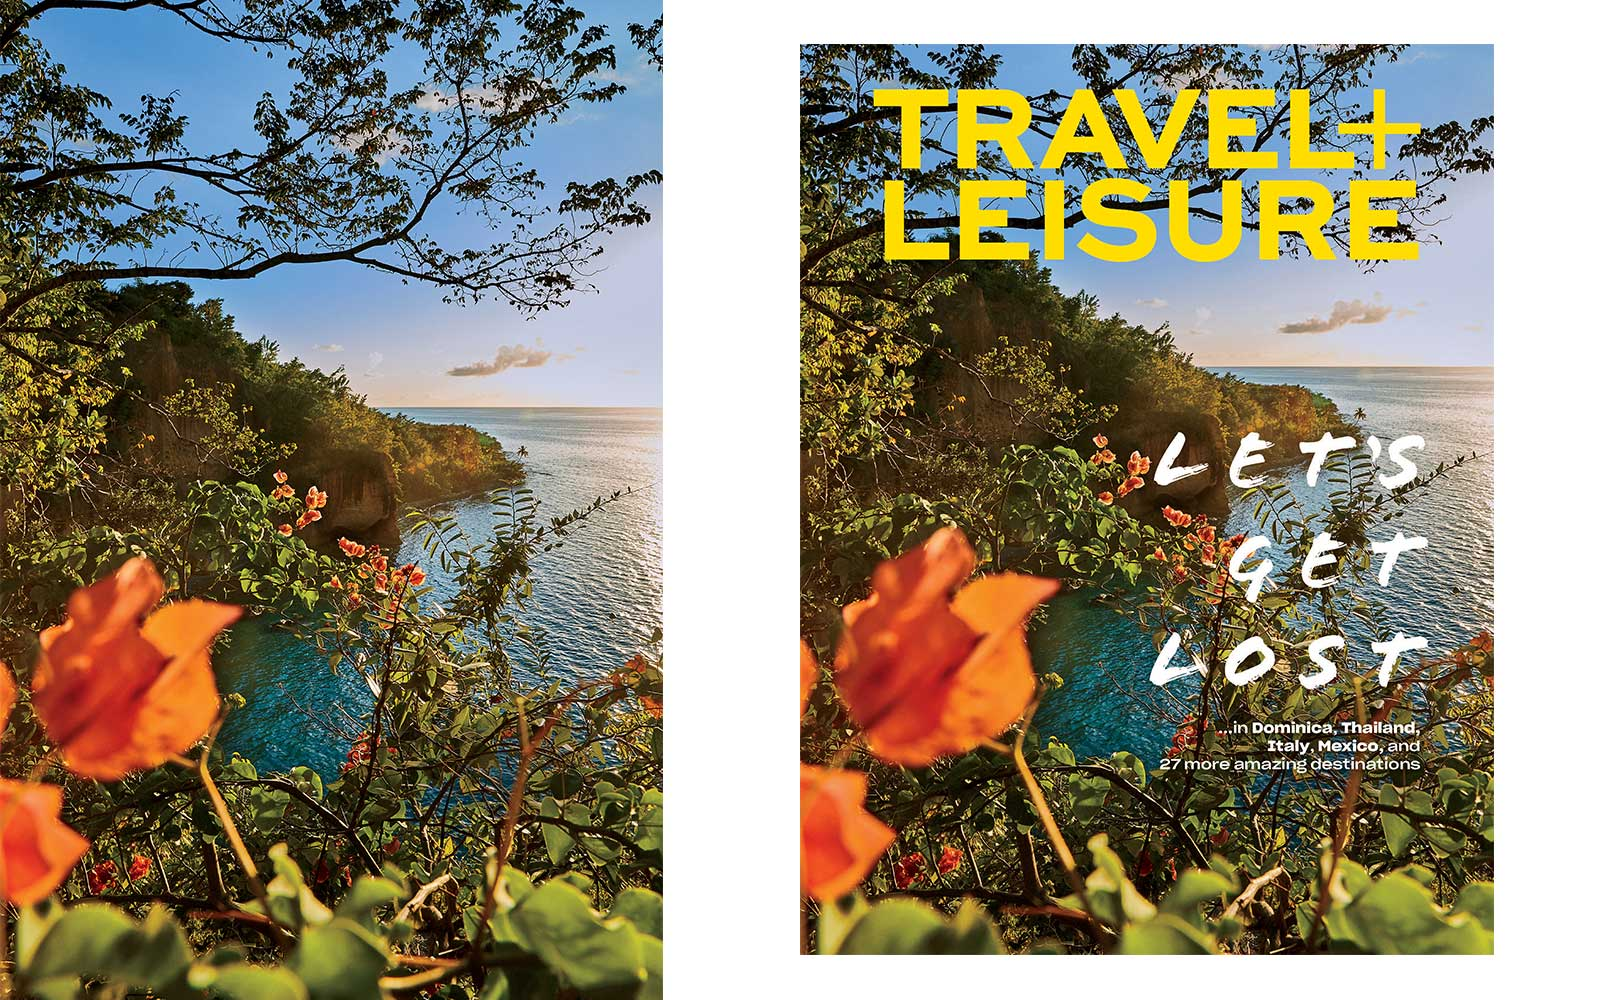 View from Secret Bay Resort in Dominica, on the April 2019 cover of Travel + Leisure magazine